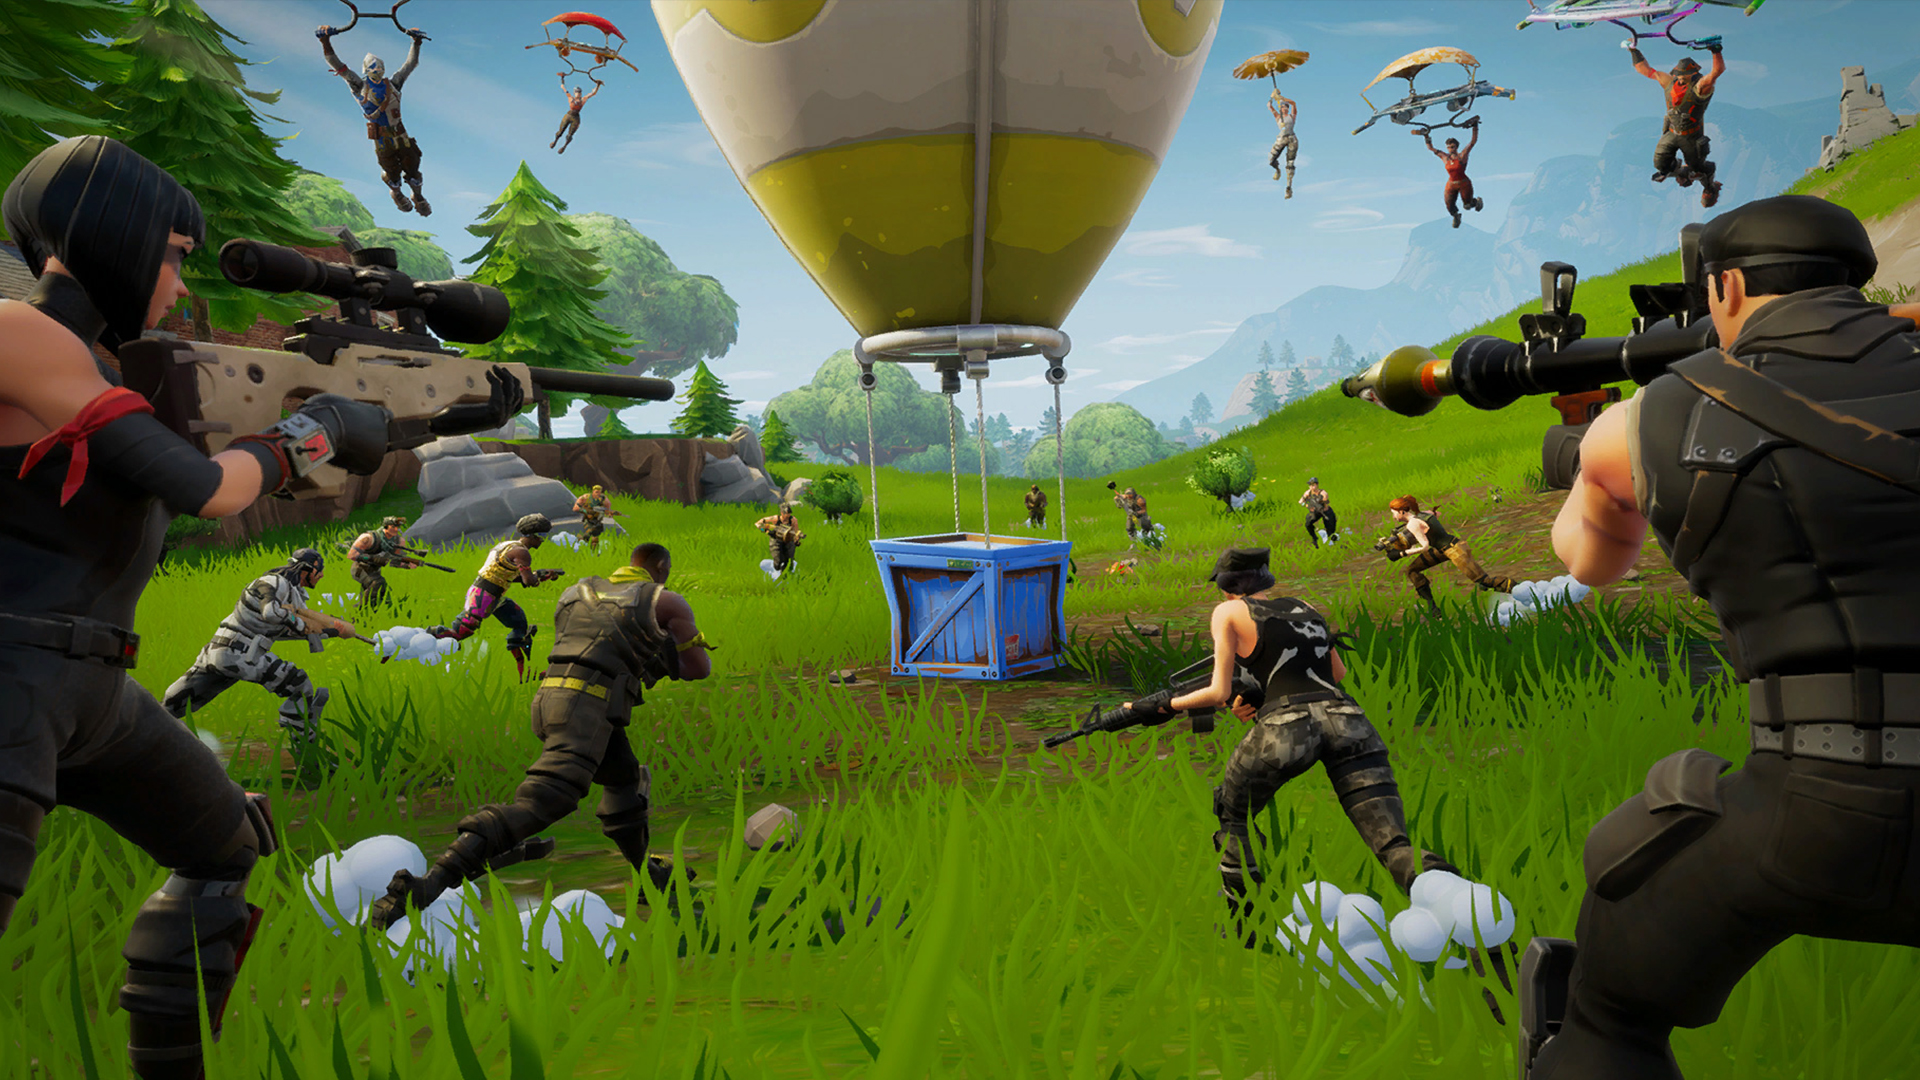 Fortnite Remains Top Of Twitch After Unmoving Black Ops 4 Release Fortnite Intel